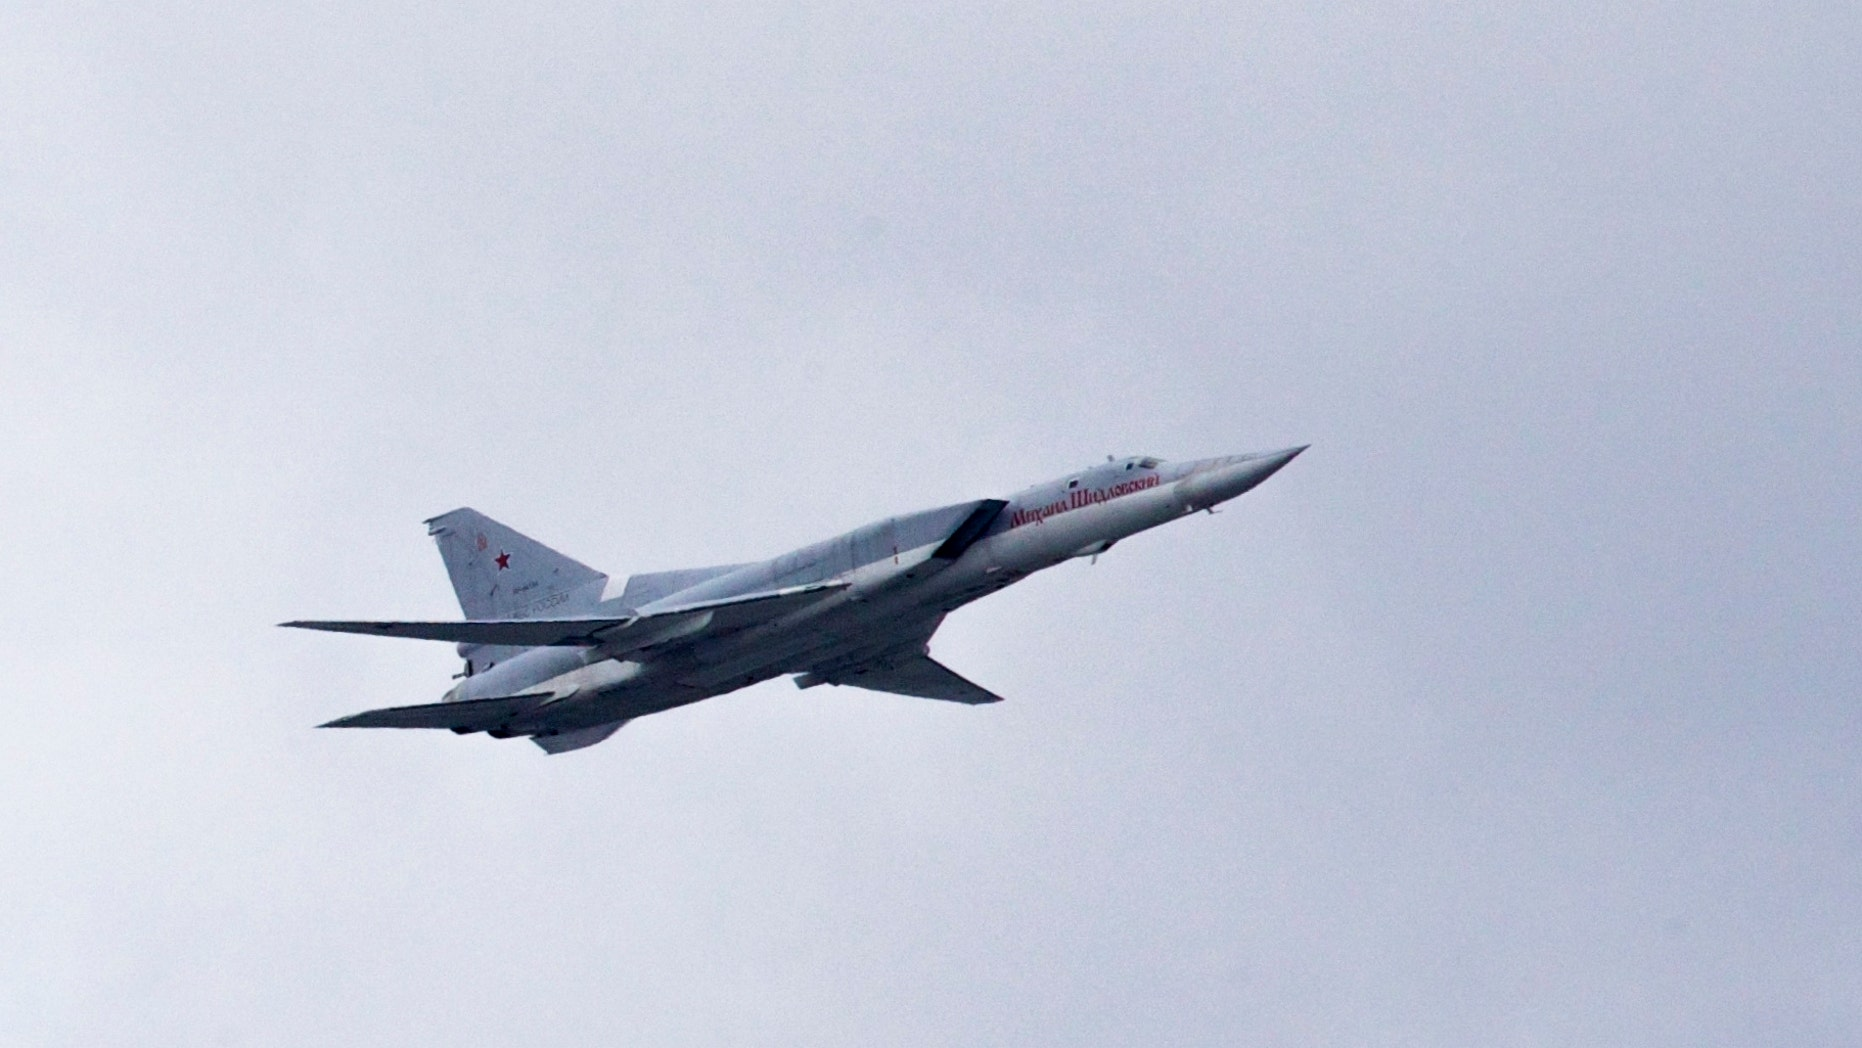 A Russian Tu-22M3 bomber, like the one pictured here, crashed during a landing at the Olenya airbase in northern Russia, killing three crewmembers and leaving one in critical condition